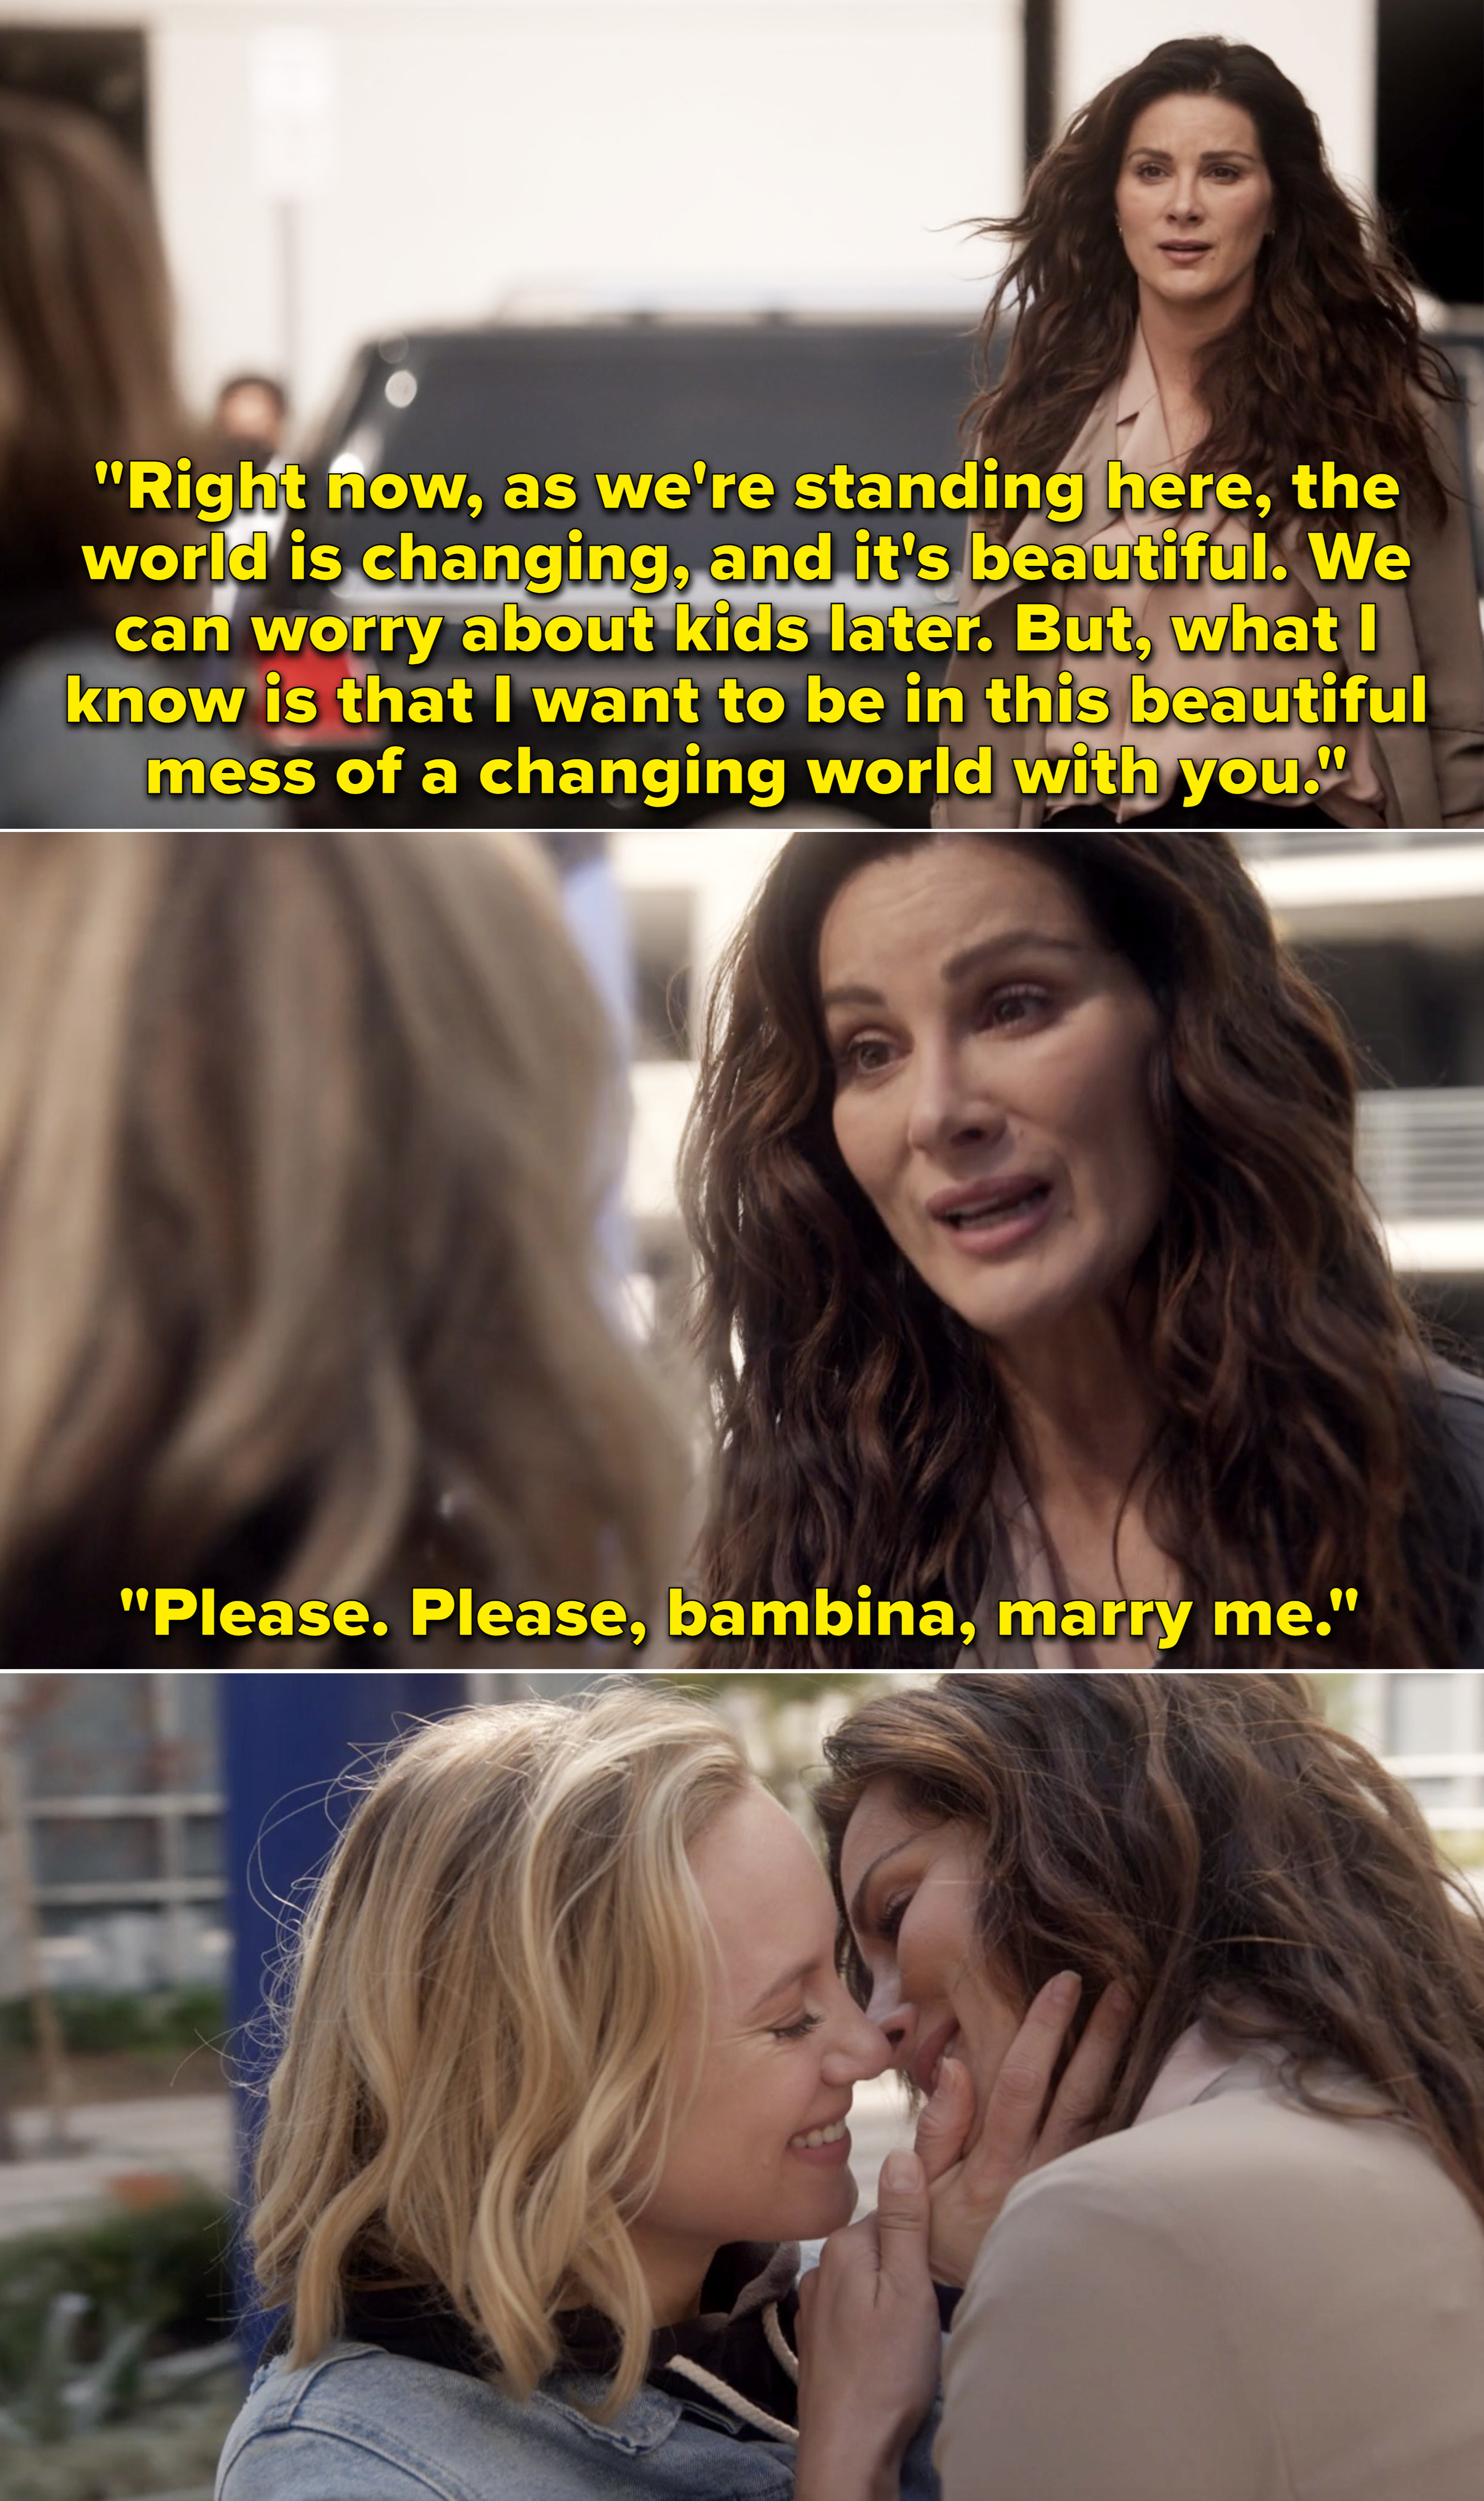 """Carina telling Maya she wants to be in this """"beautiful mess of changing world"""" with her"""